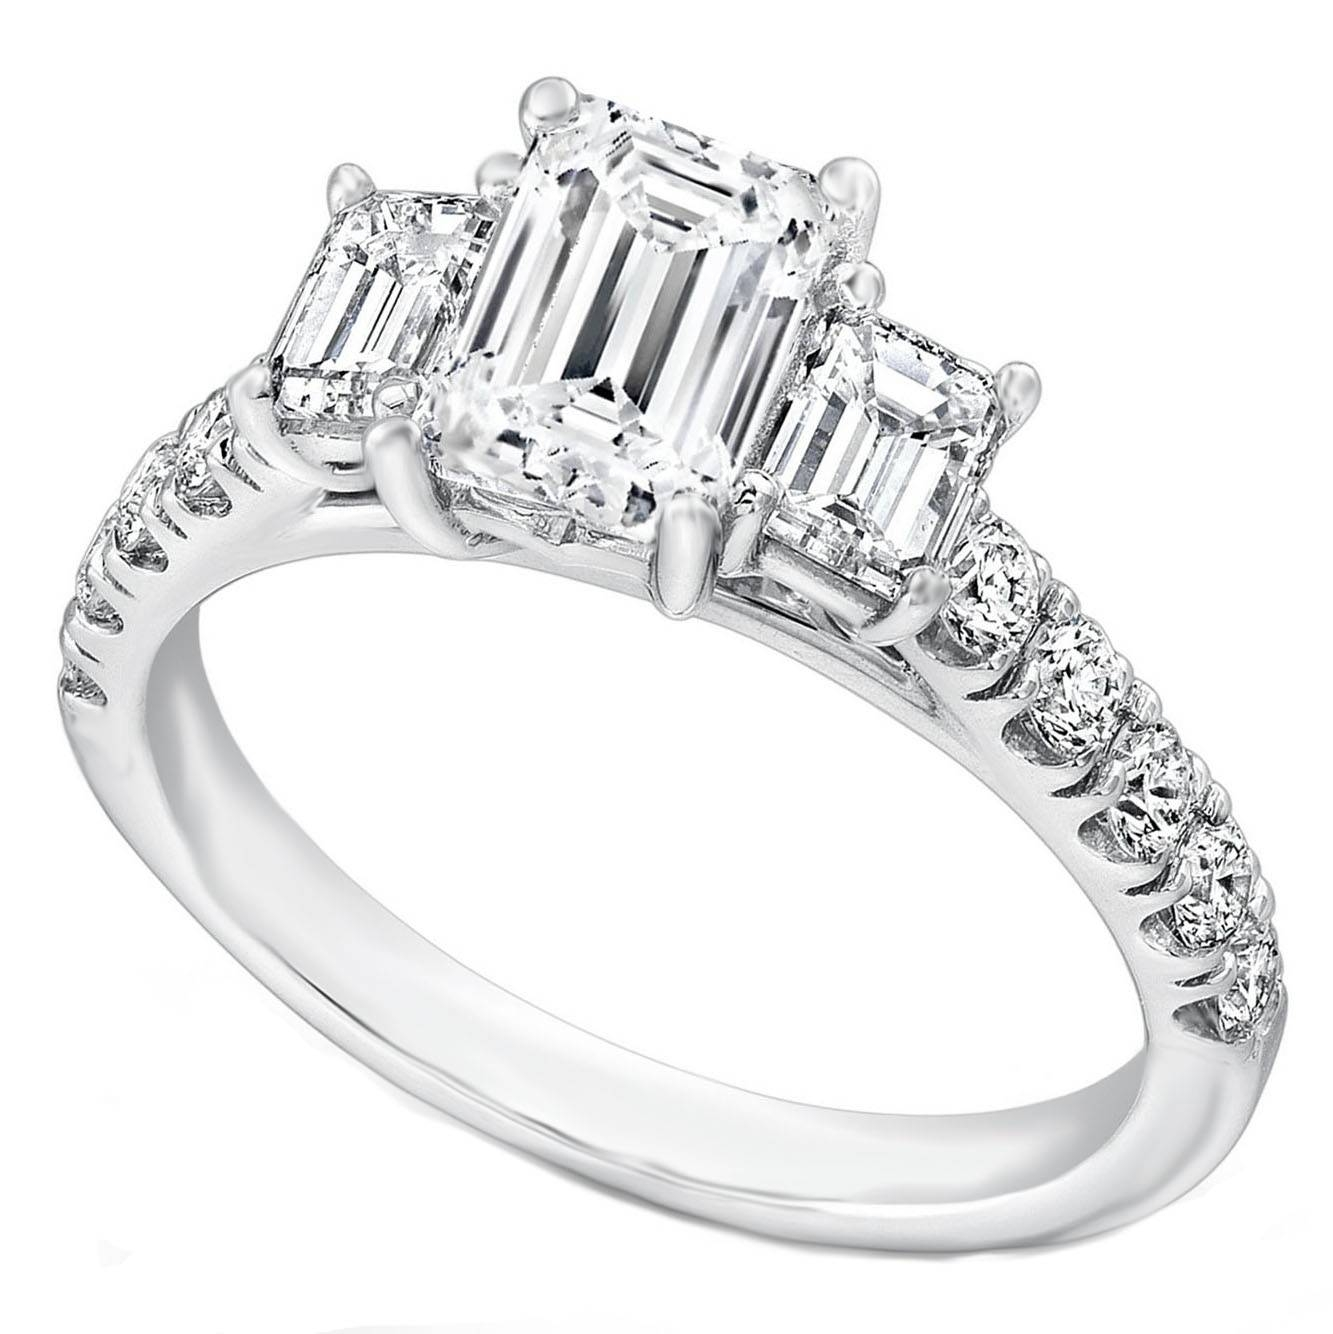 Engagement Ring Three Stone Emerald Cut Diamond Cathedral Throughout 3 Stone Emerald Cut Diamond Engagement Rings (View 12 of 15)